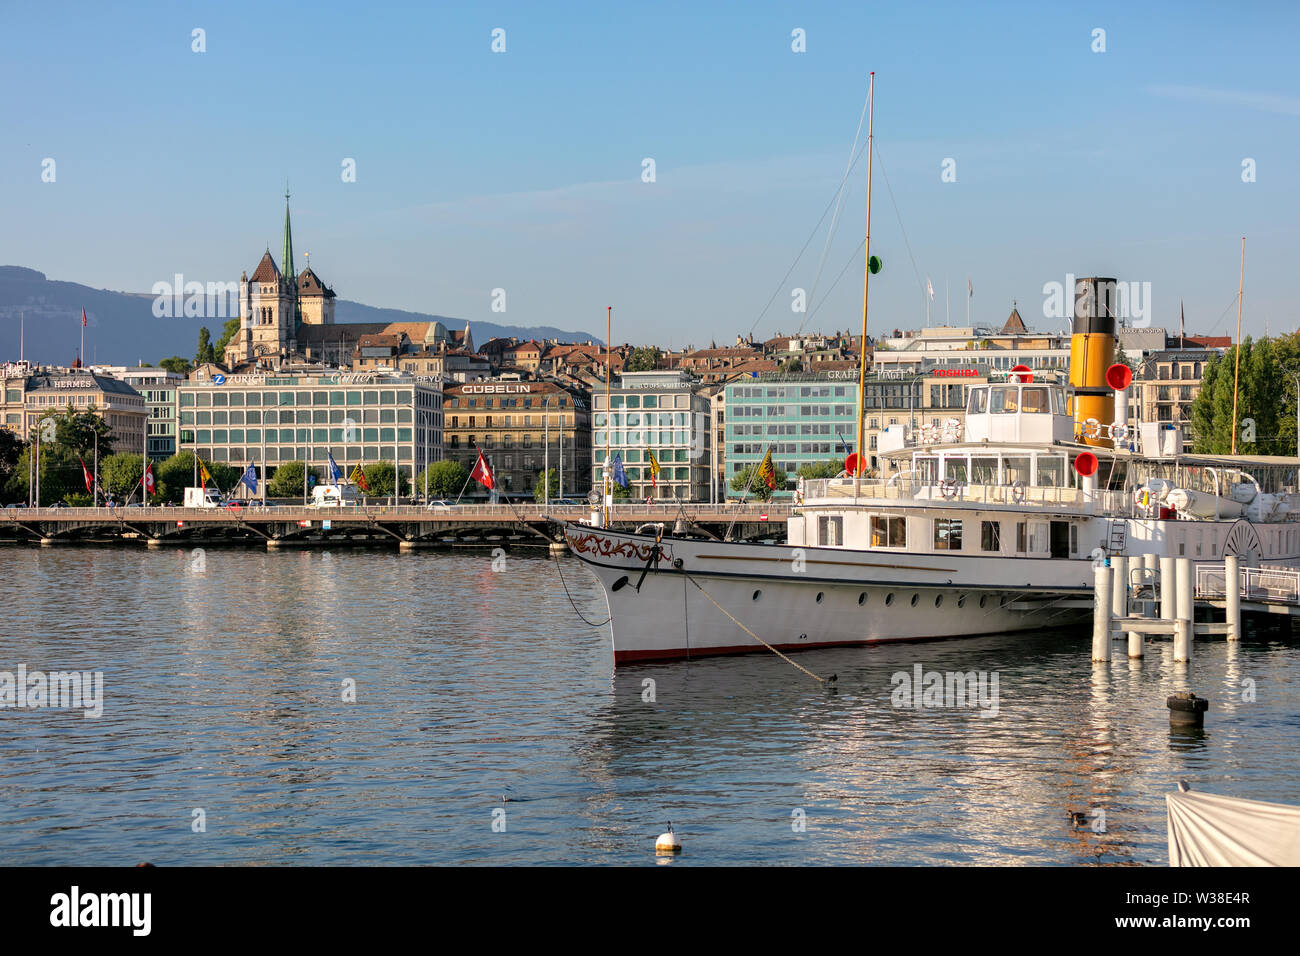 Downtown of Geneva and the steamer boat in the port on lake Geneva - Stock Image